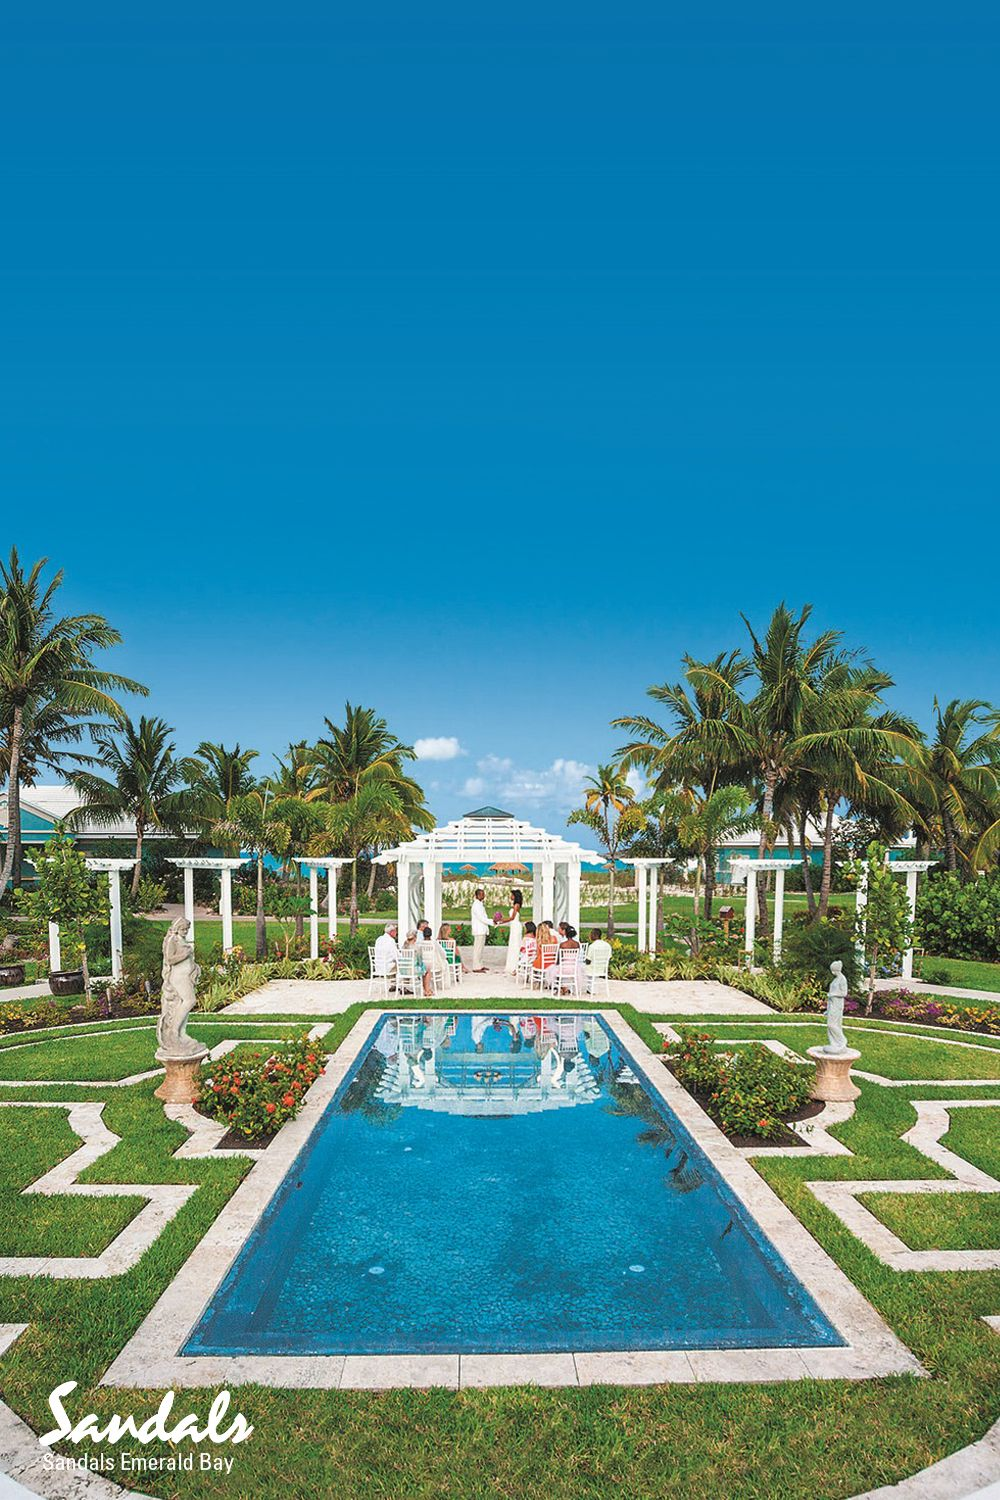 Get married in paradise. Have your destination wedding in